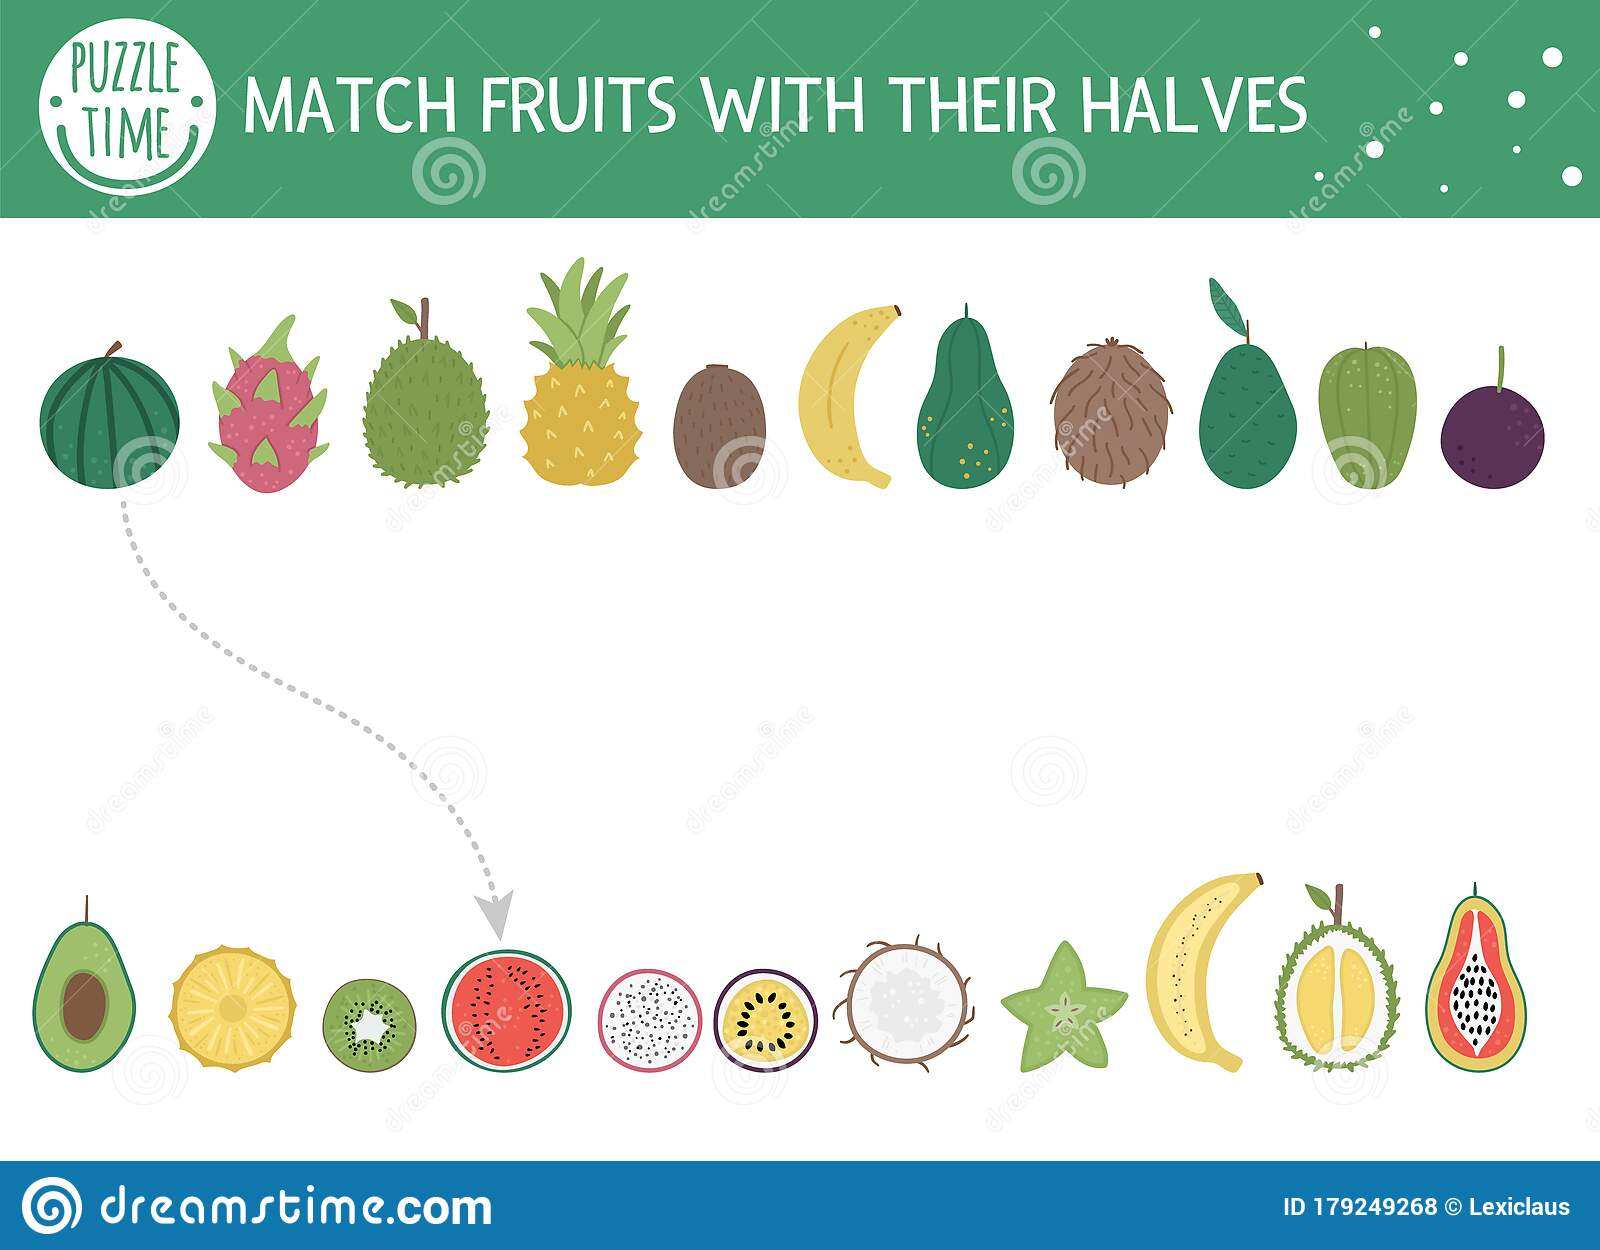 Tropical Matching Activity For Children With Fruits And